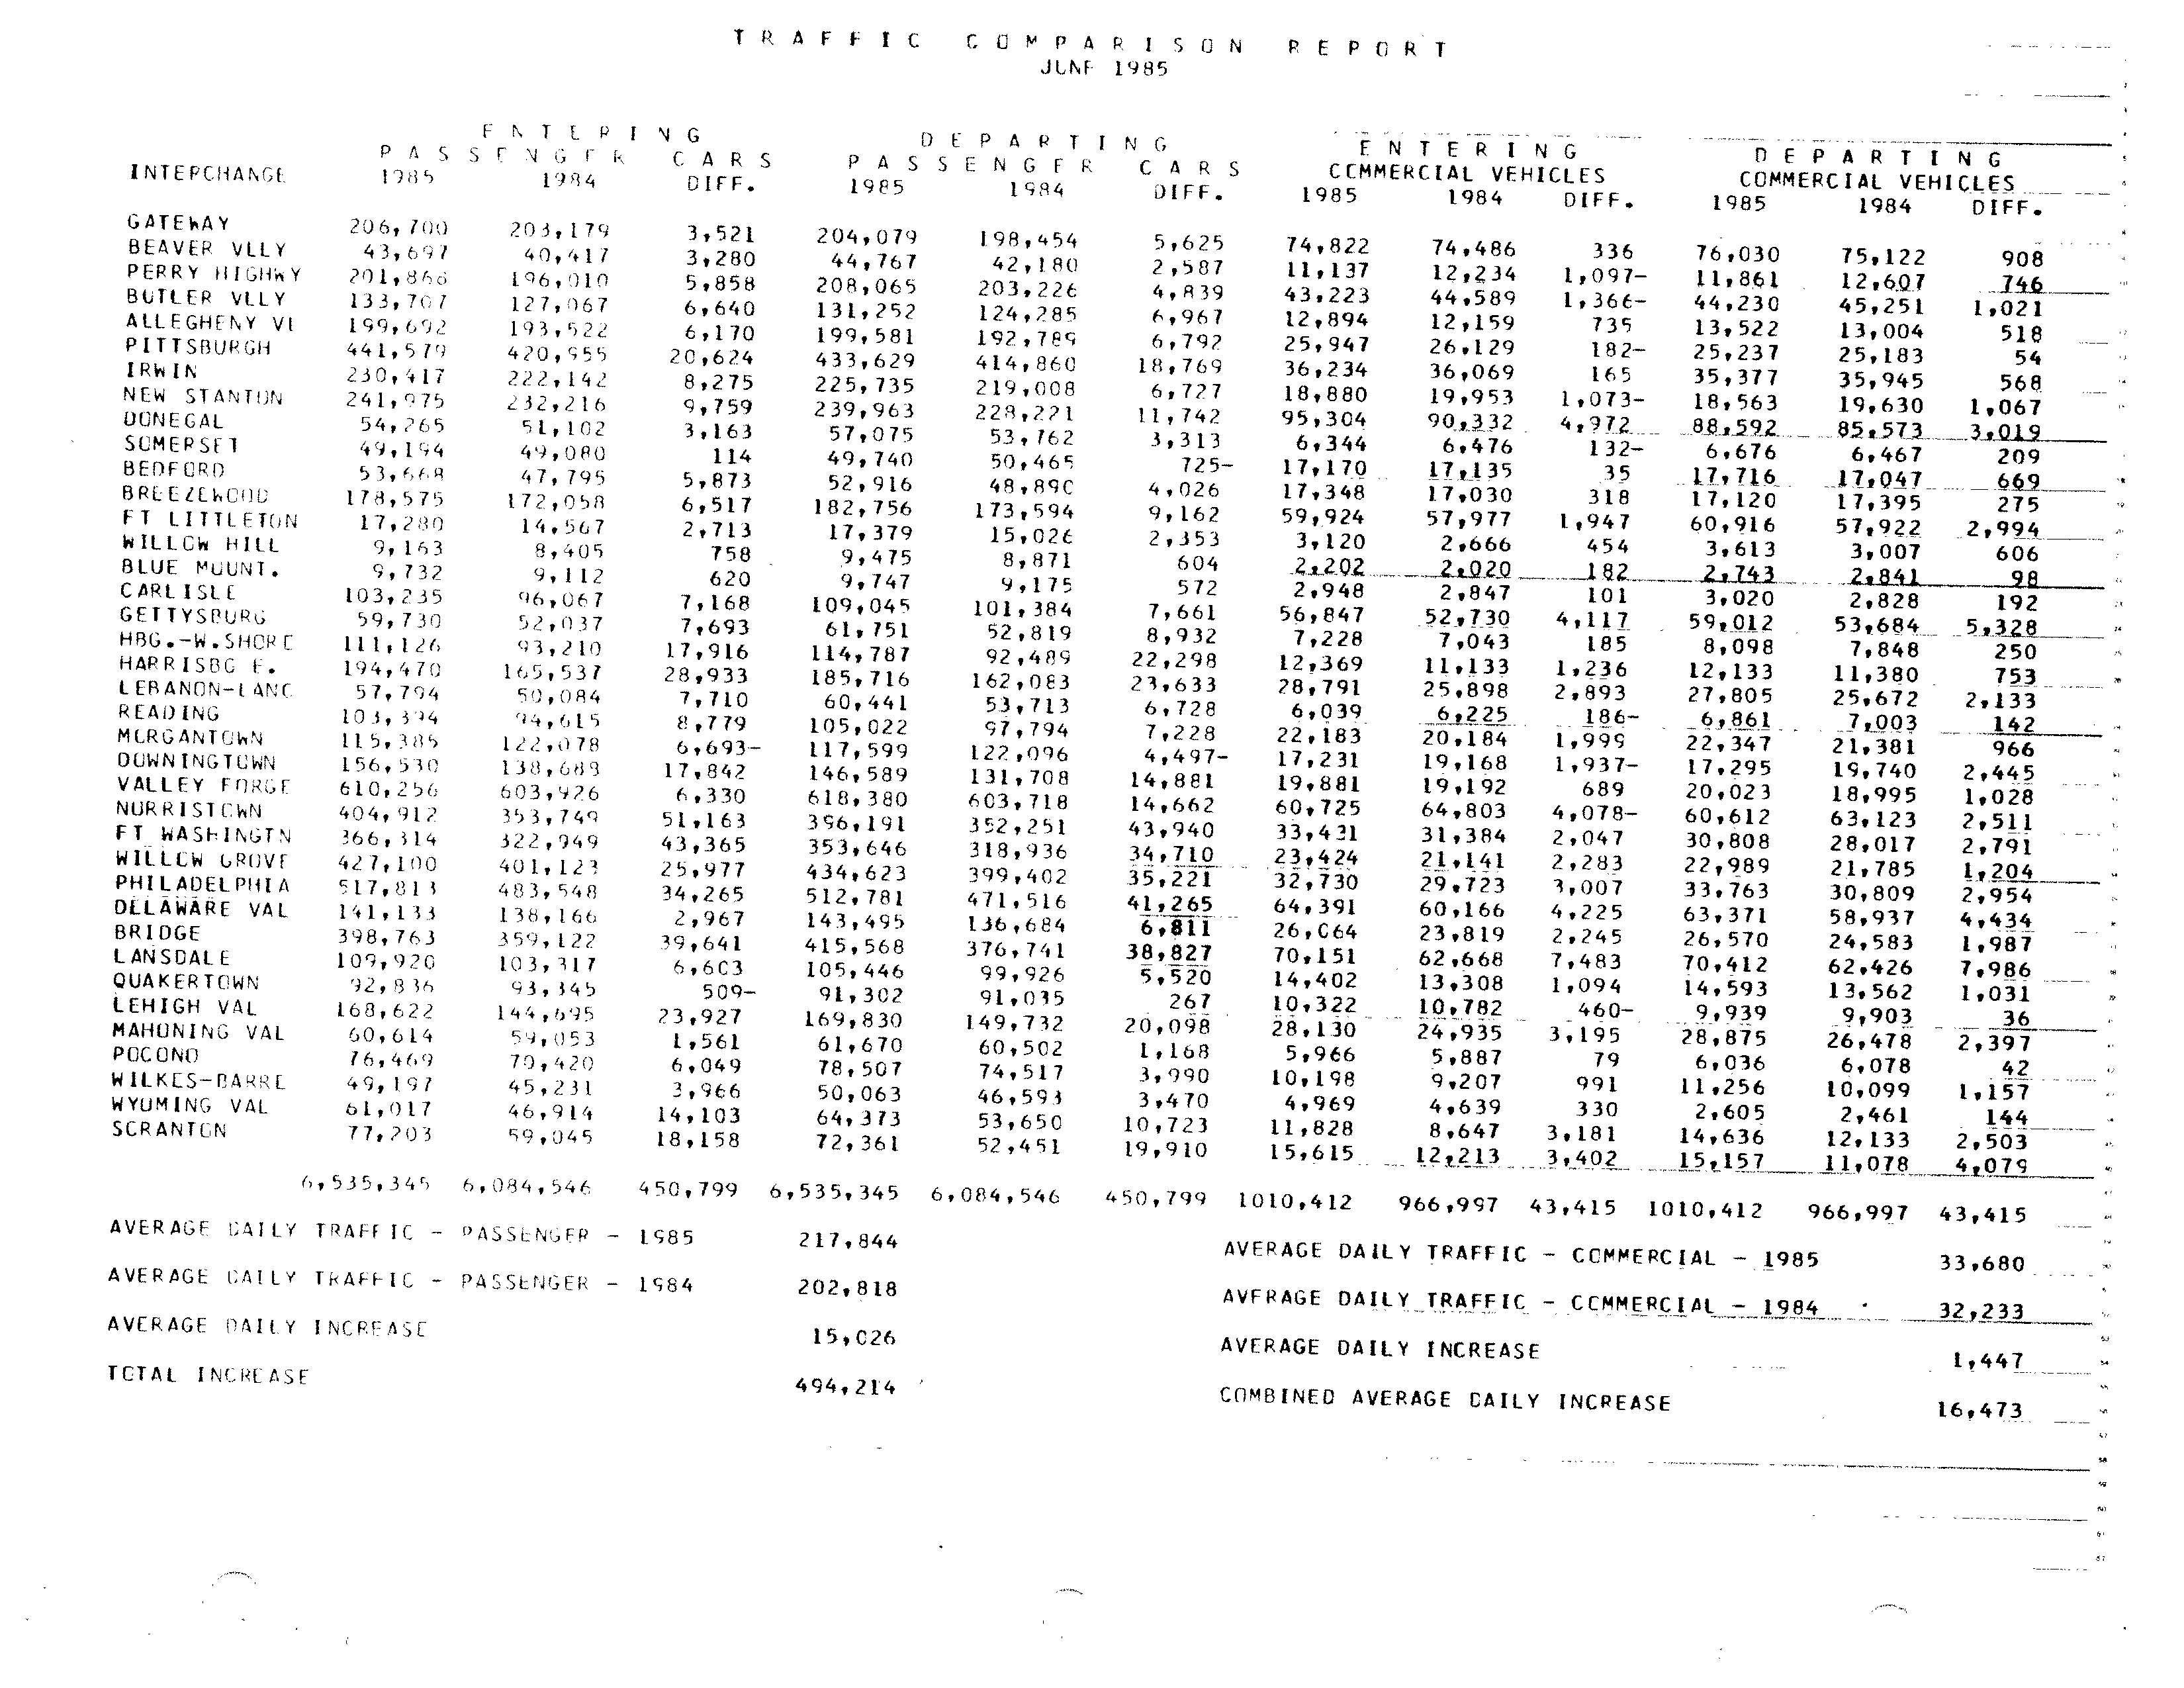 A report on Pennsylvania Turnpike traffic for June 1985. Approximately 49,740 passenger vehicles and 17,716 commercial vehicles exited the Somerset interchange during this period.